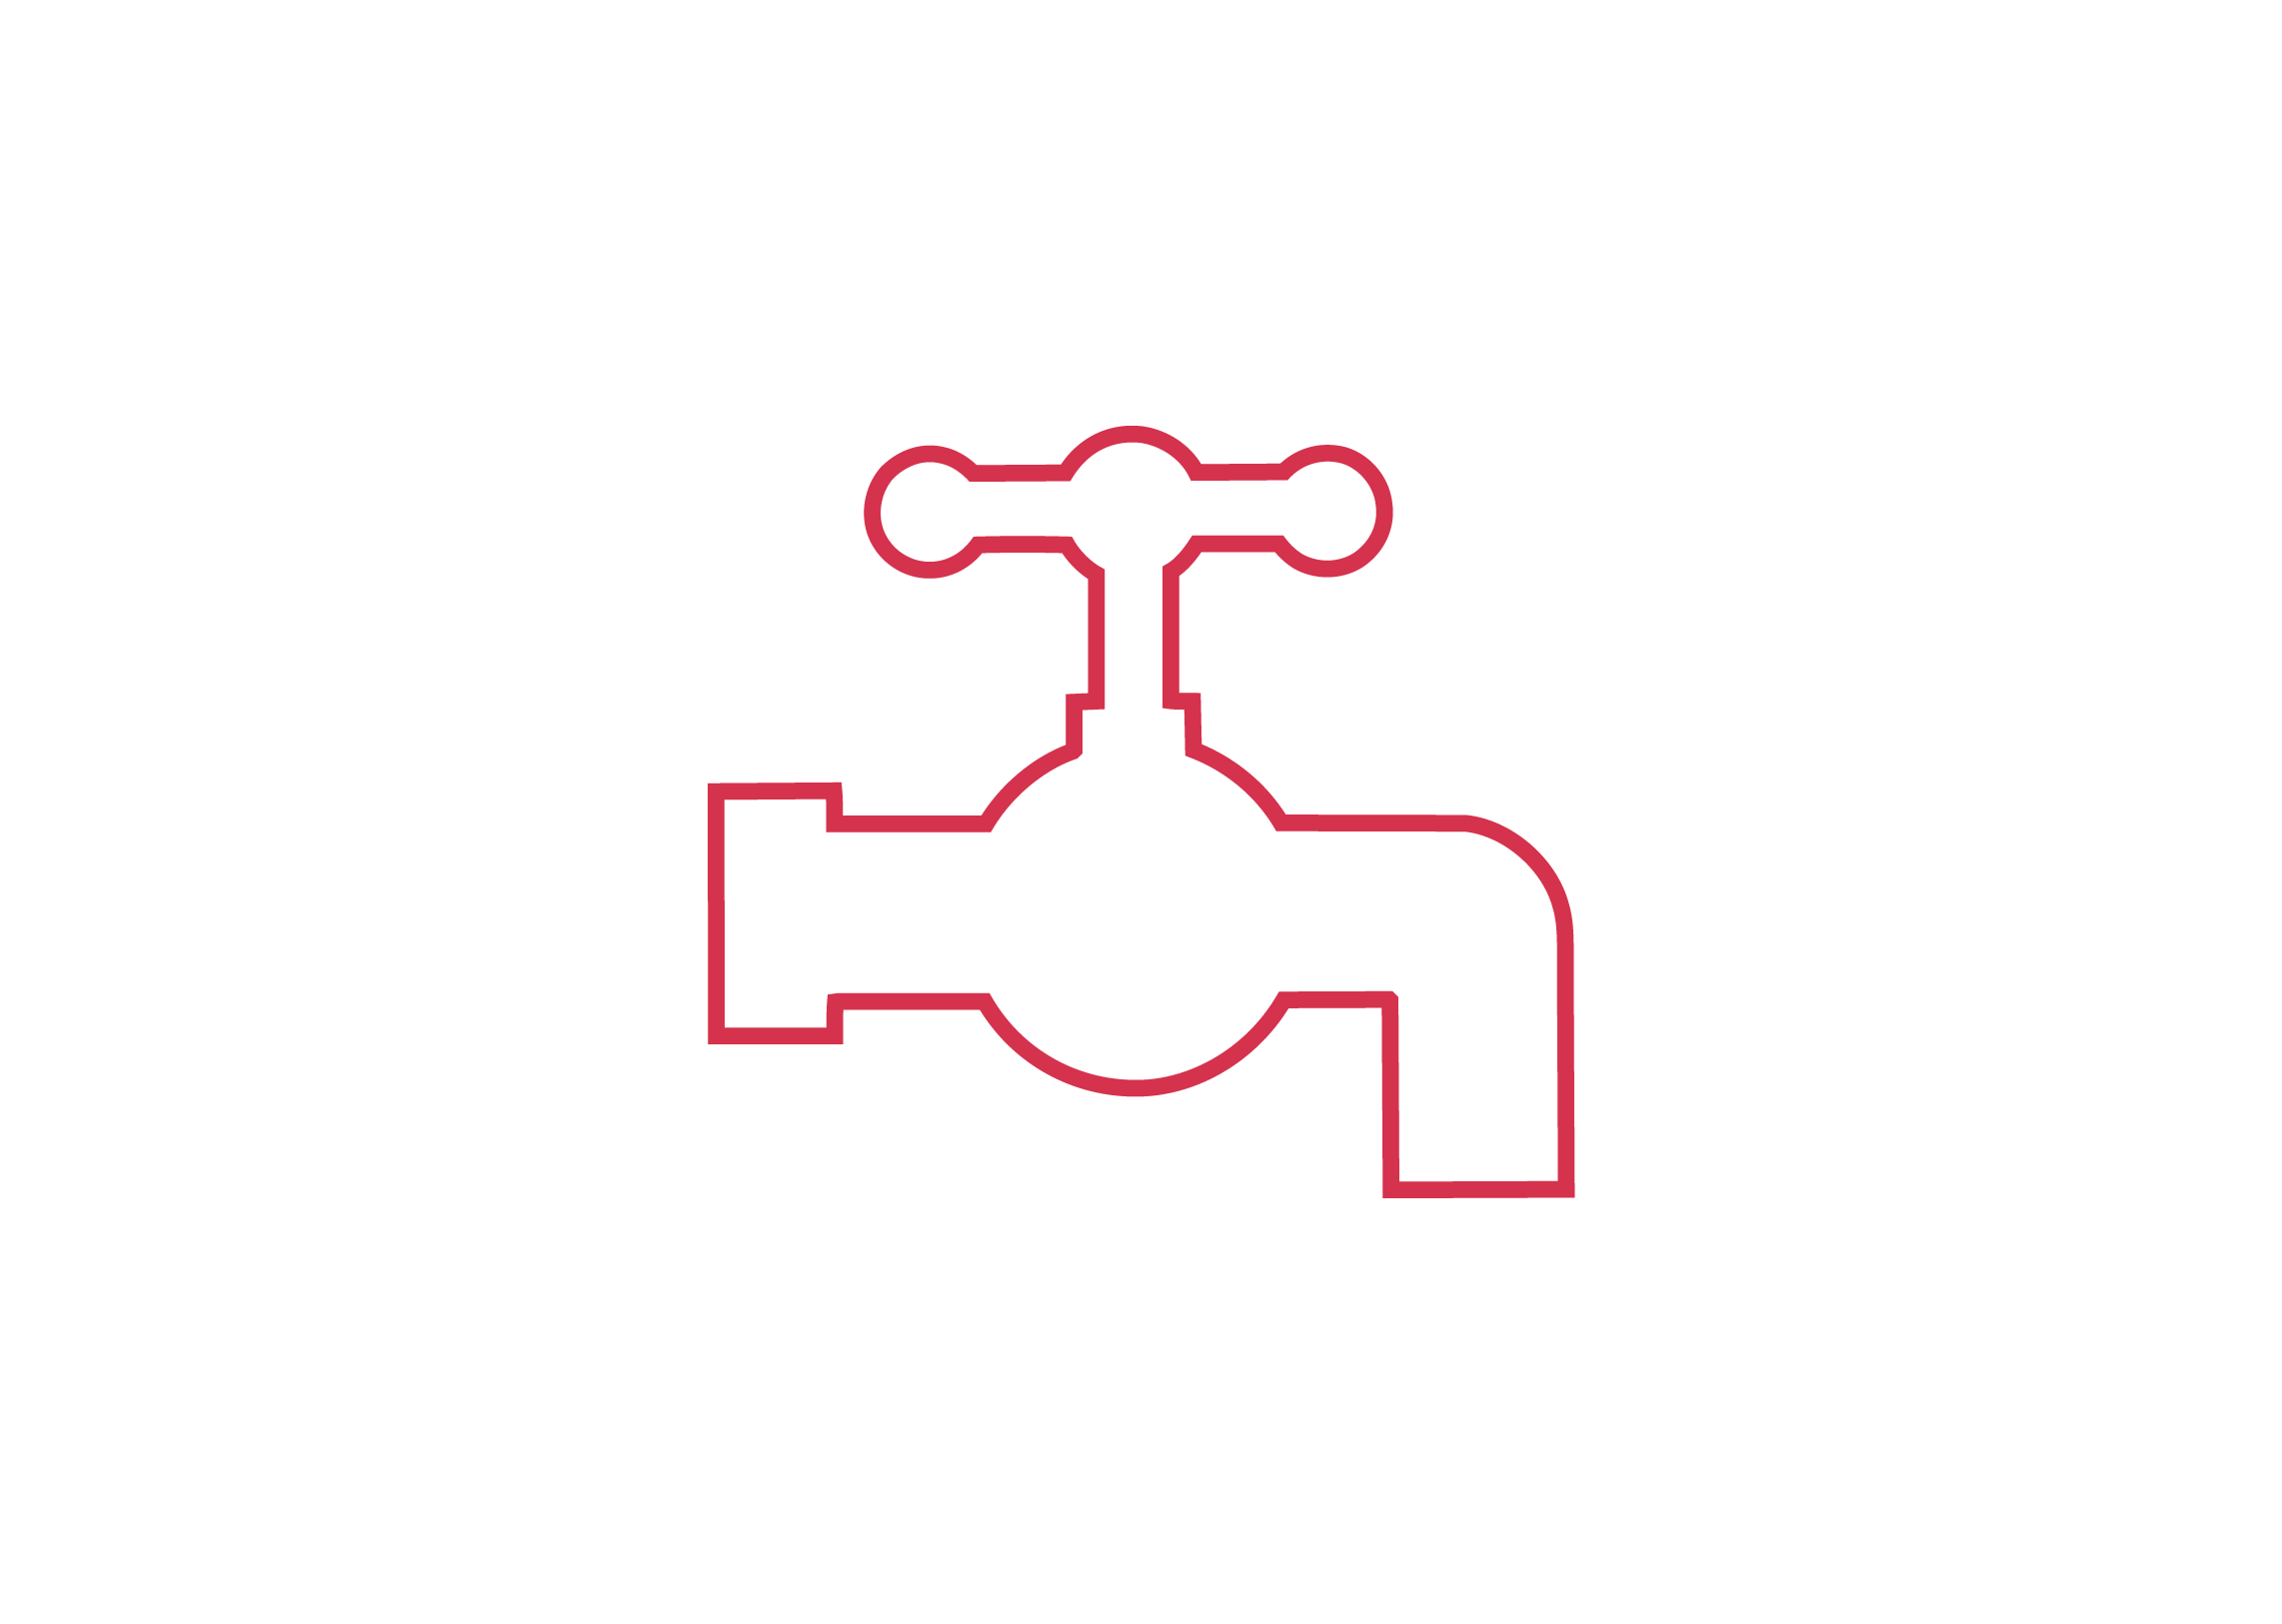 free-vector-black-plumbing-icon-set [Converted]-02.png